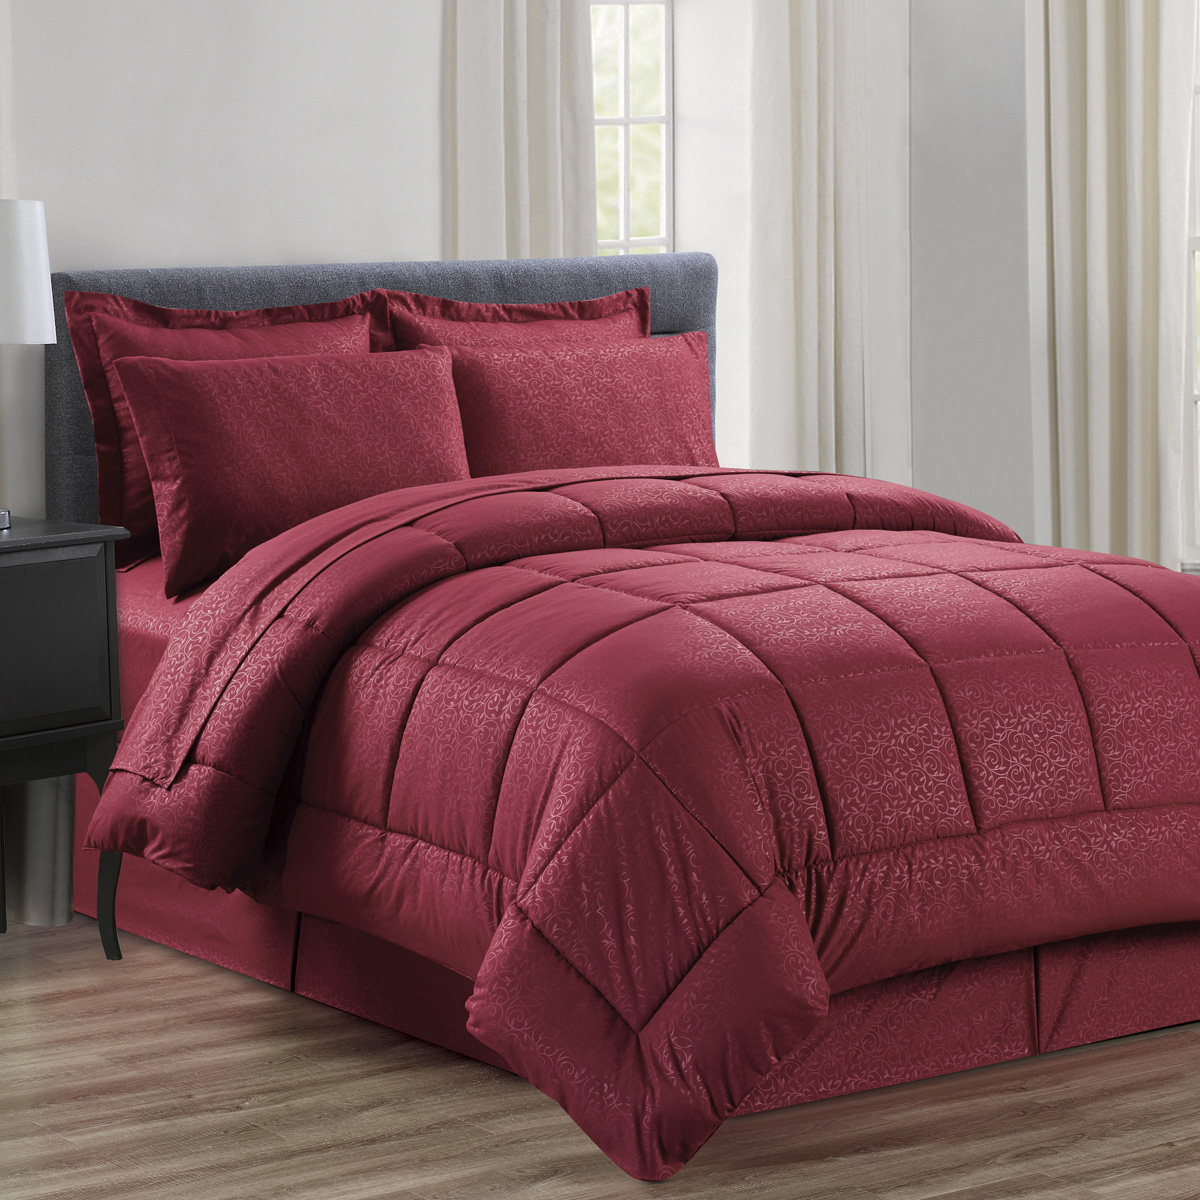 8 Piece Bed In A Bag Vine Embossed Comforter Sheet Bed Skirt Sham Set